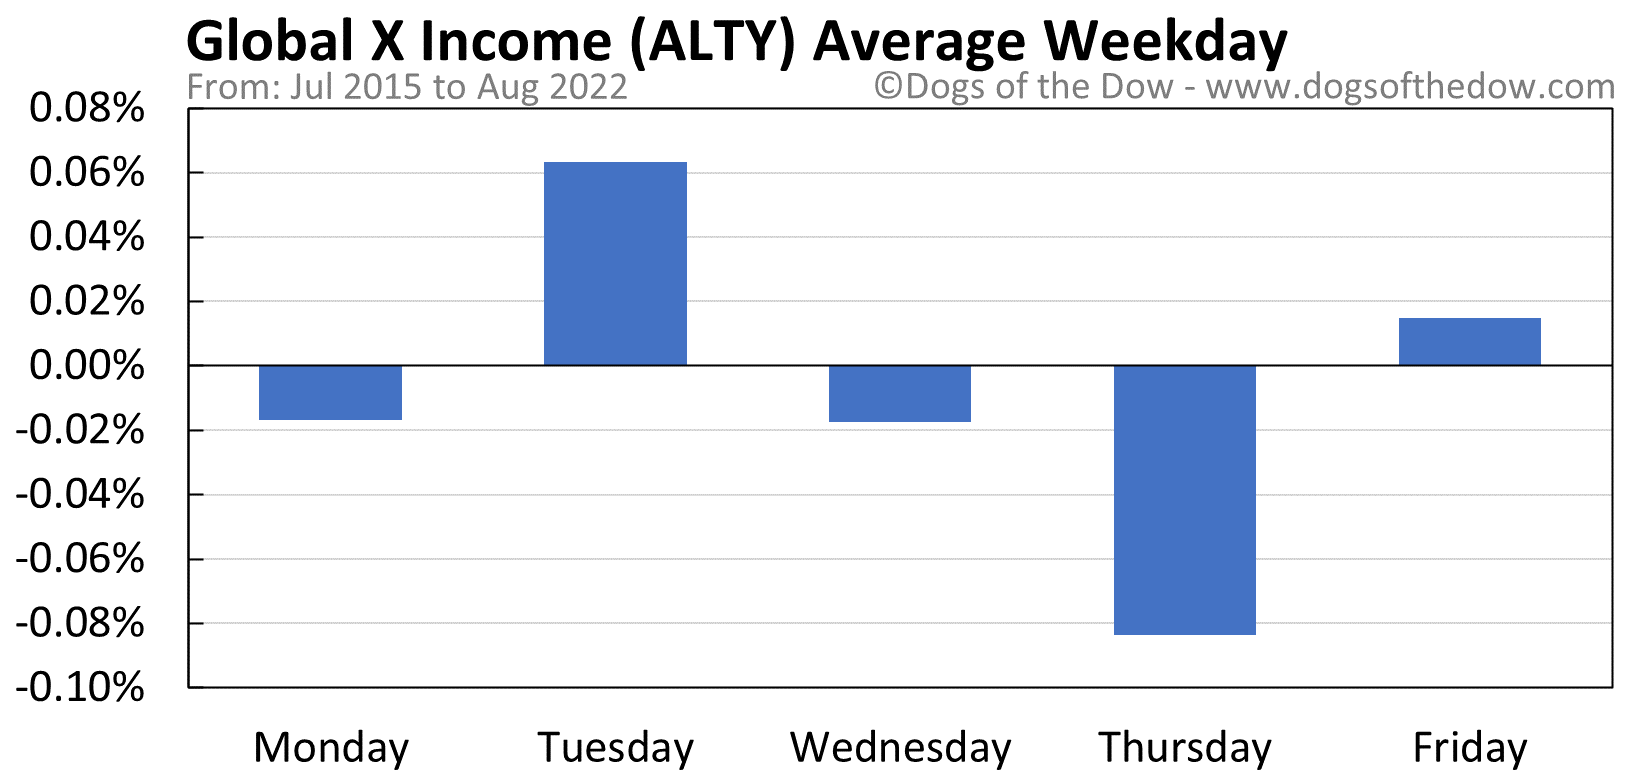 ALTY average weekday chart